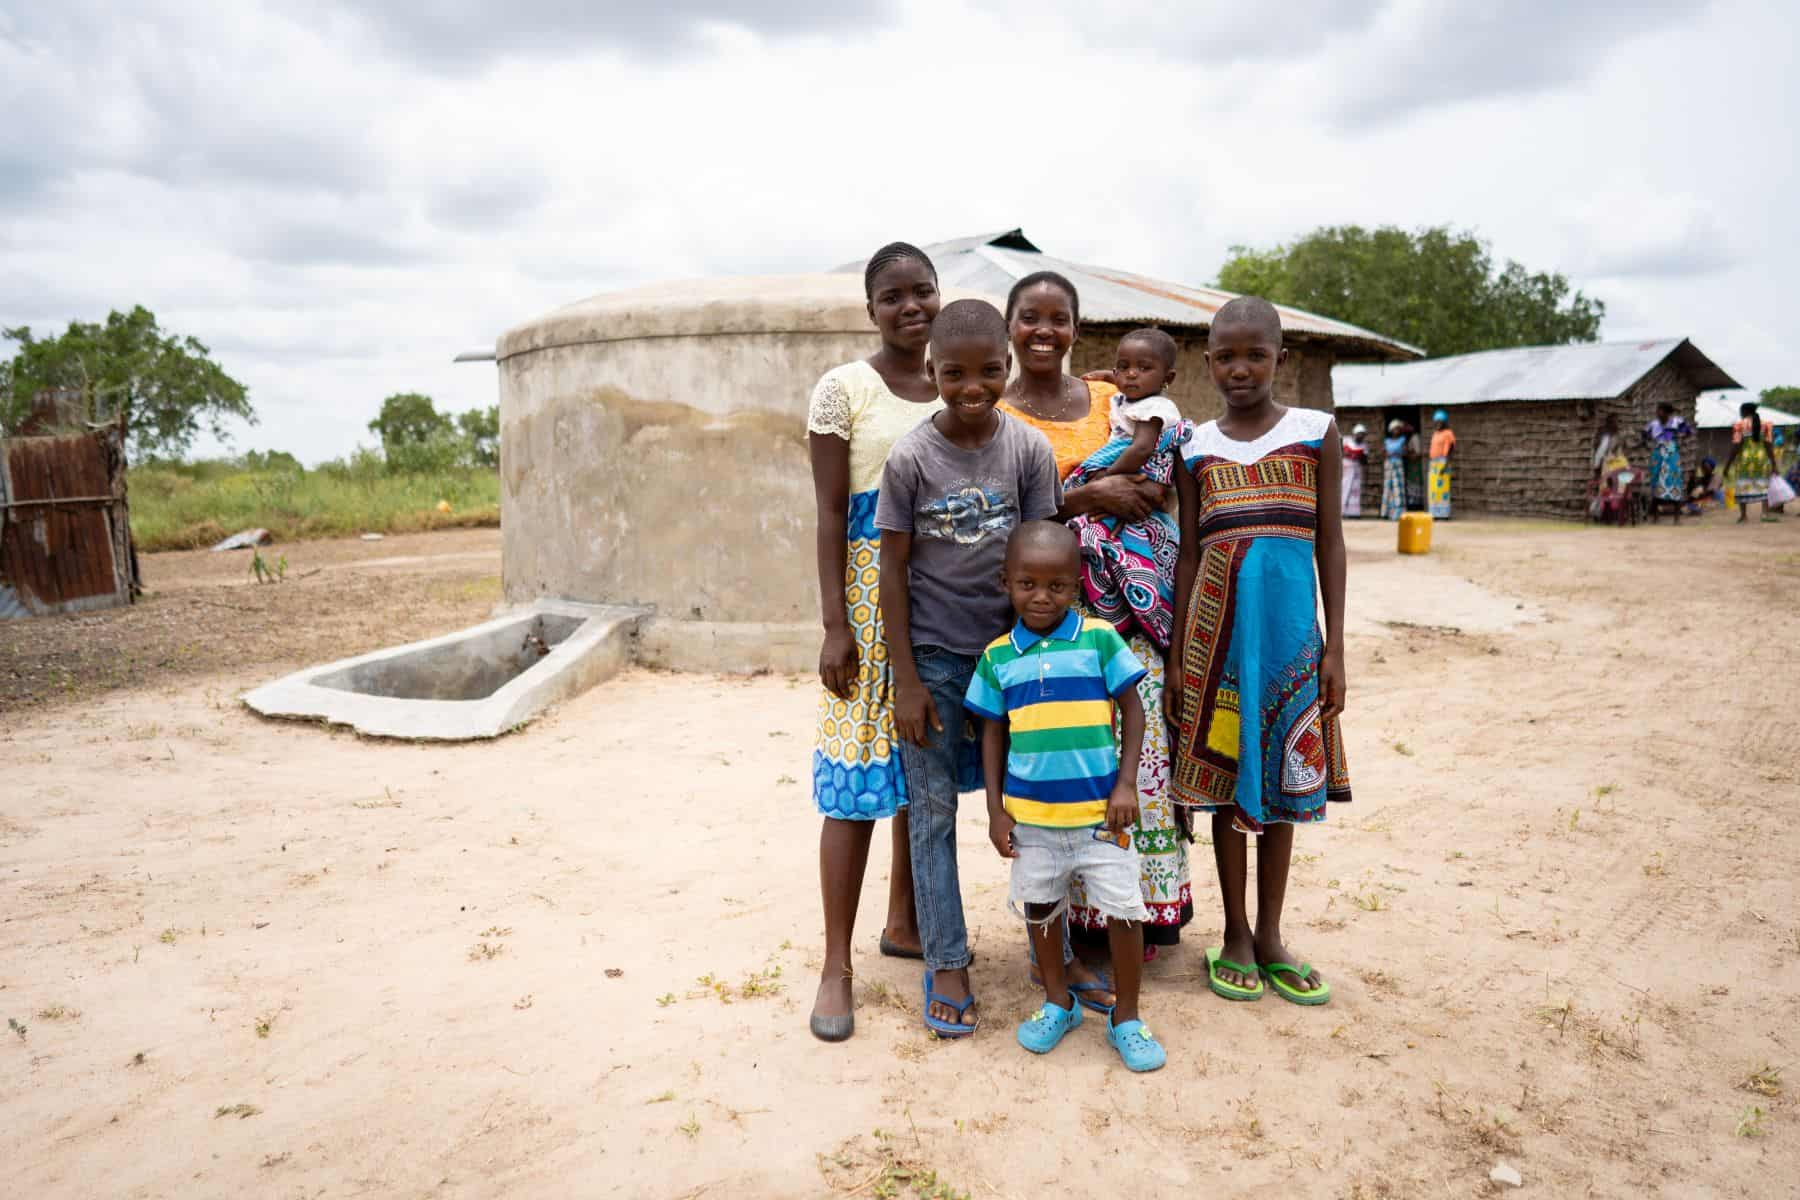 Eunice and her children rejoice in a new, nearby water source, a BioSand Water Filter, hygiene training, and best of all, new life in Jesus Christ. God uses your prayers and gifts to make this possible.